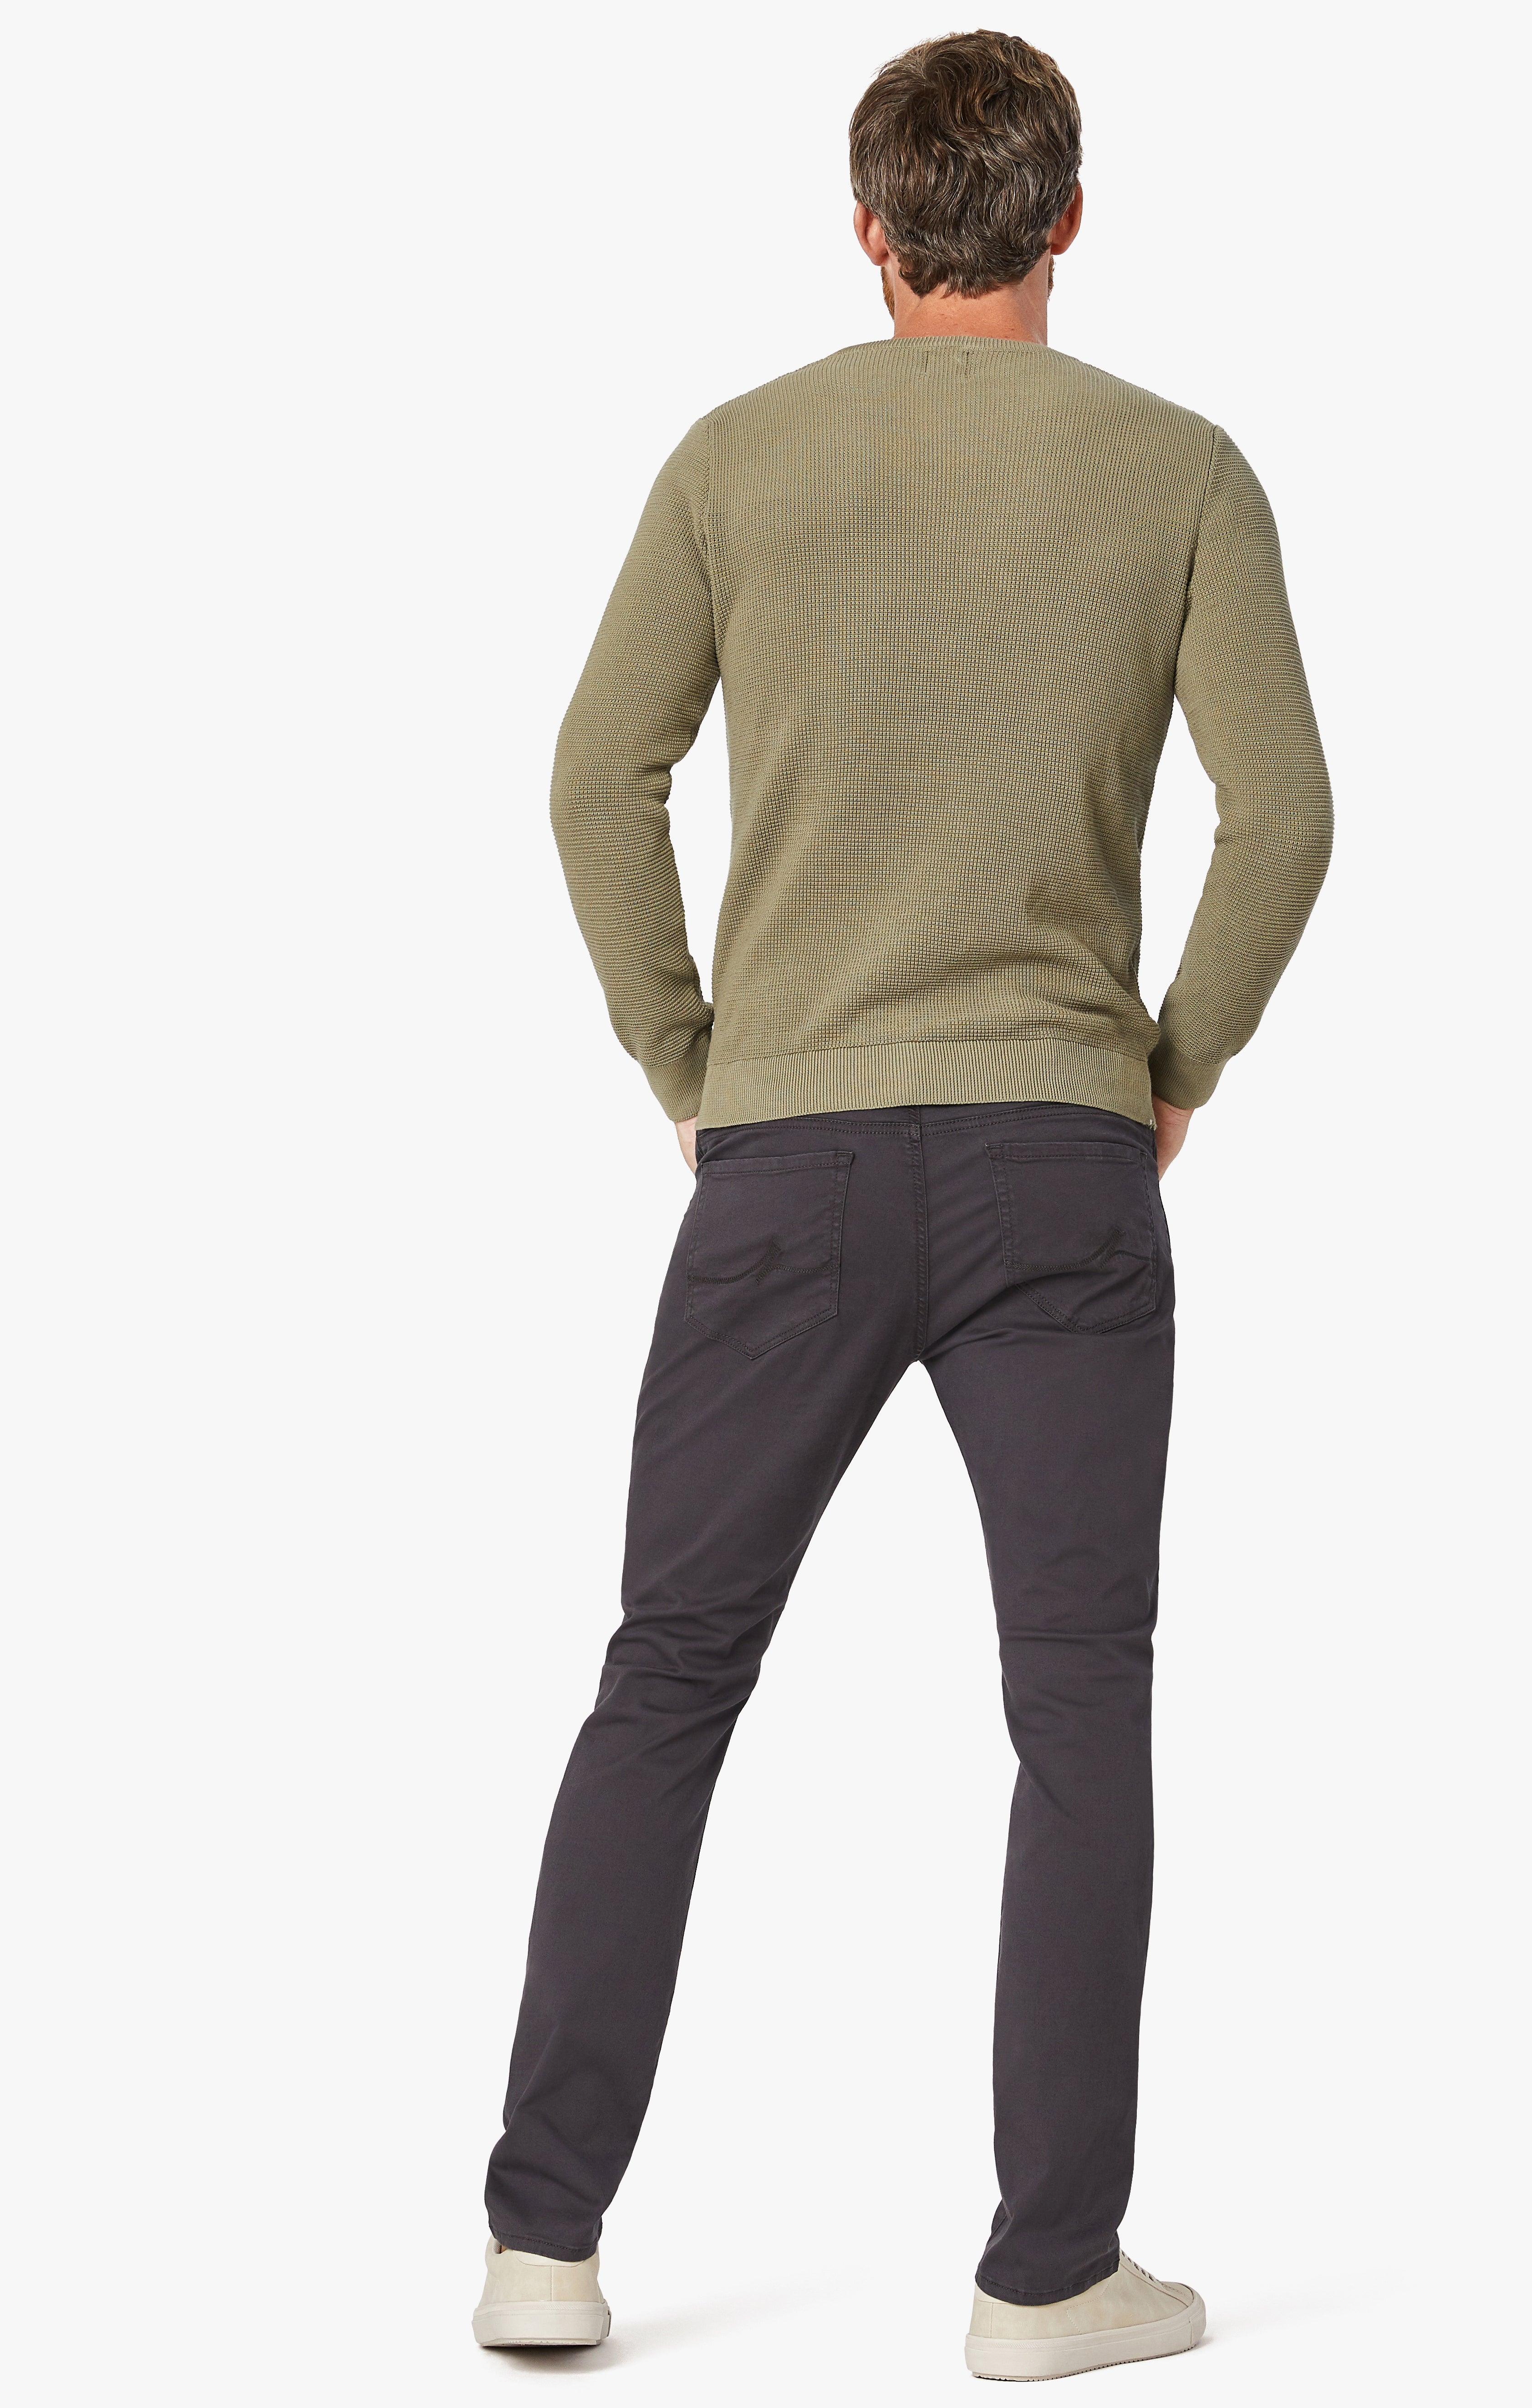 Cool Tapered Leg Pants In Anthracite Twill Image 4